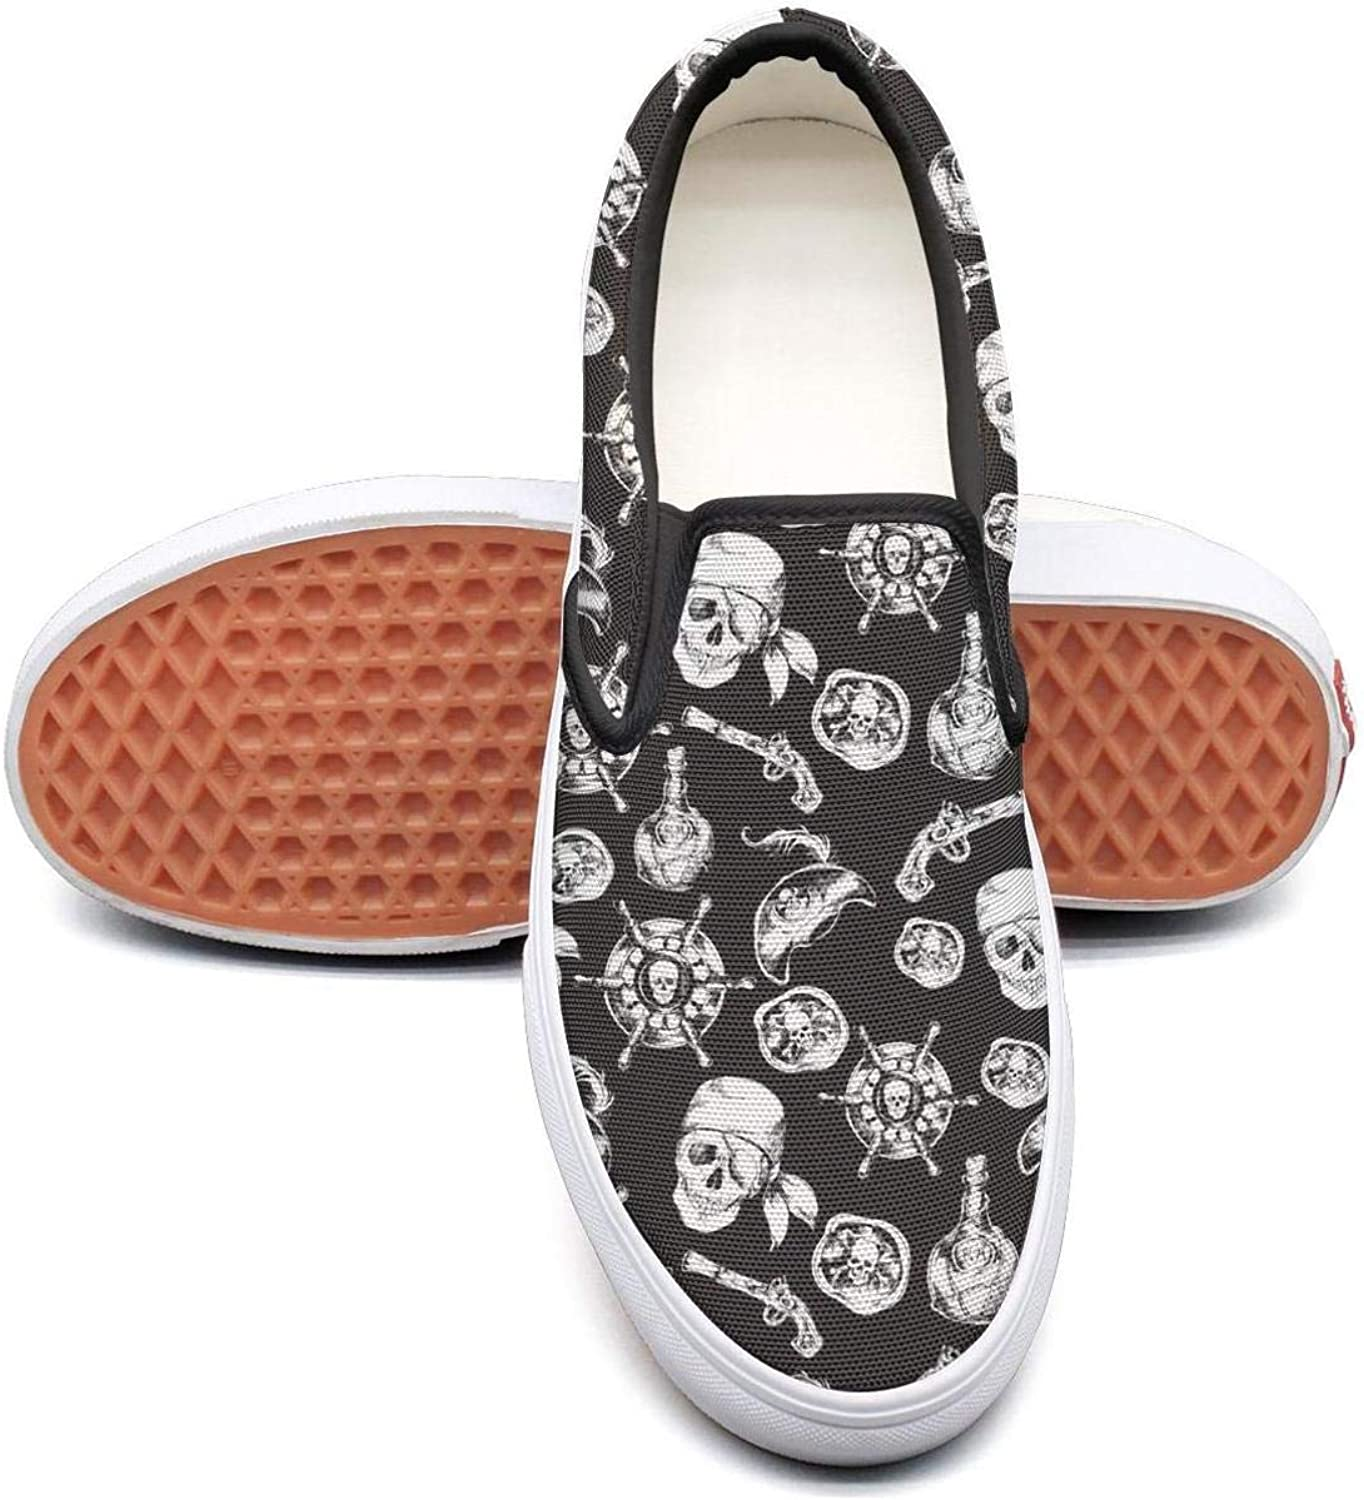 Pirates Skulls Black and White Slip On Superior Comfort Sneakers Canvas shoes for Women Comfortable